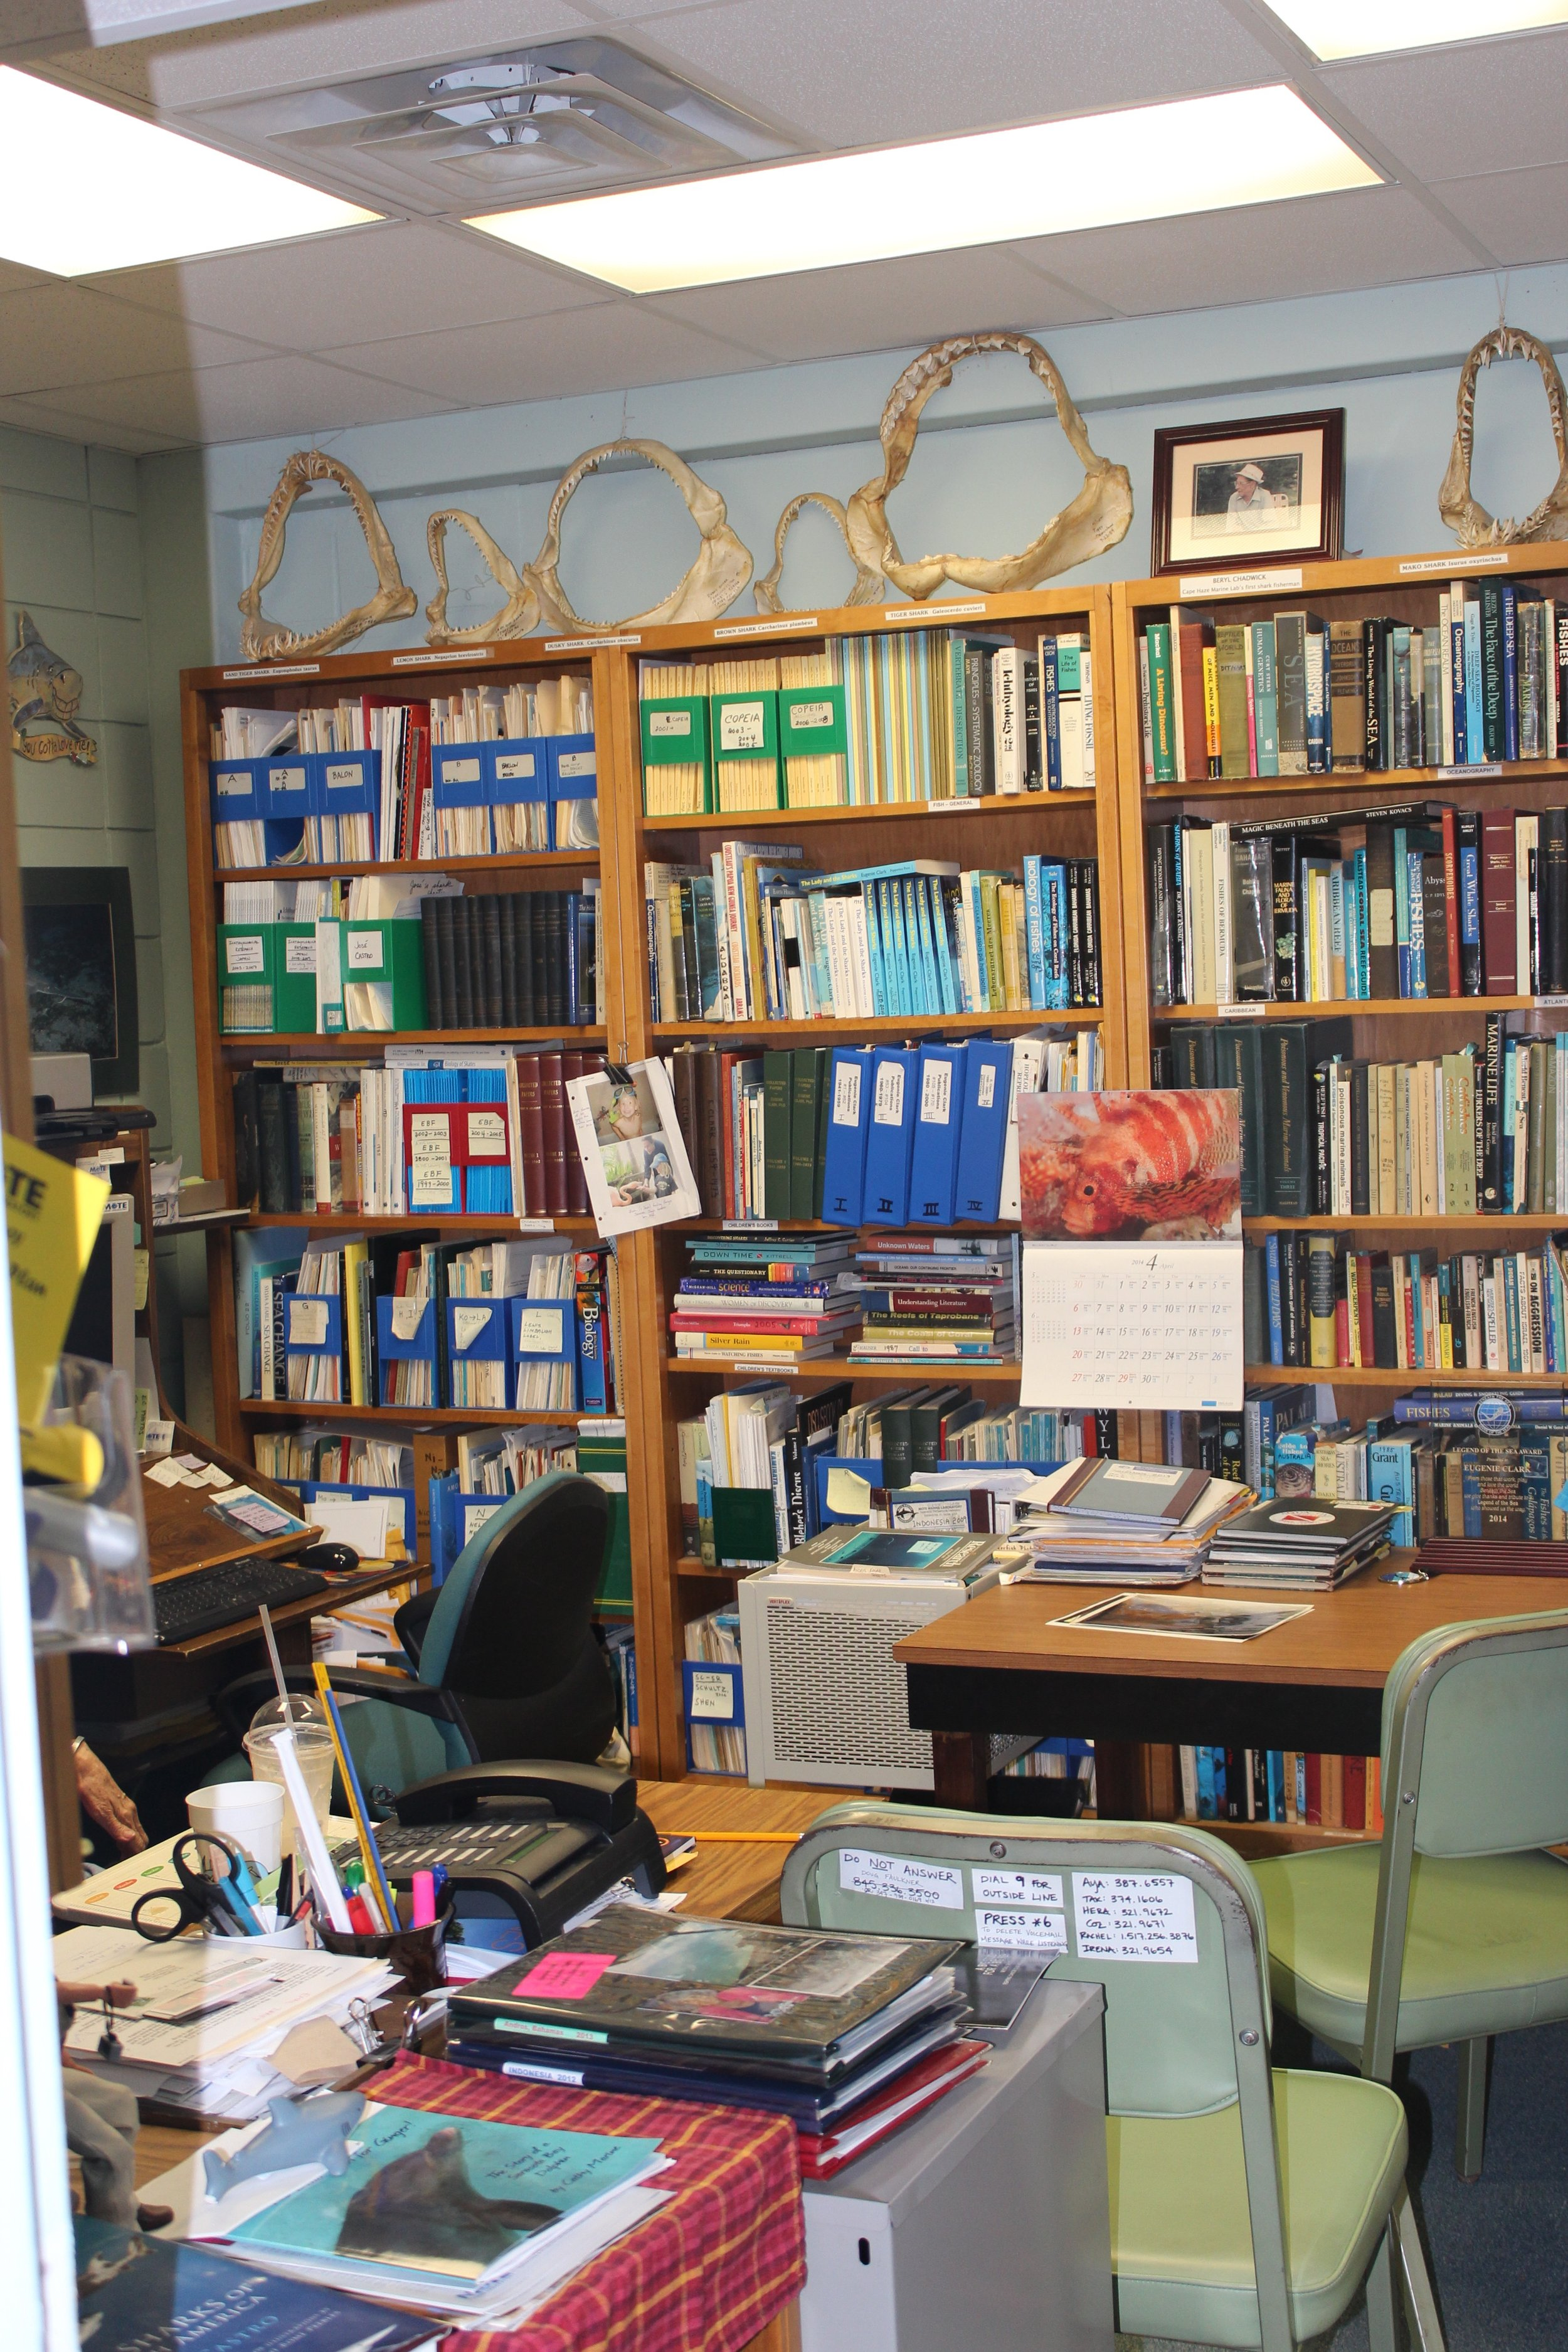 Genie's office with her shark jaw collection